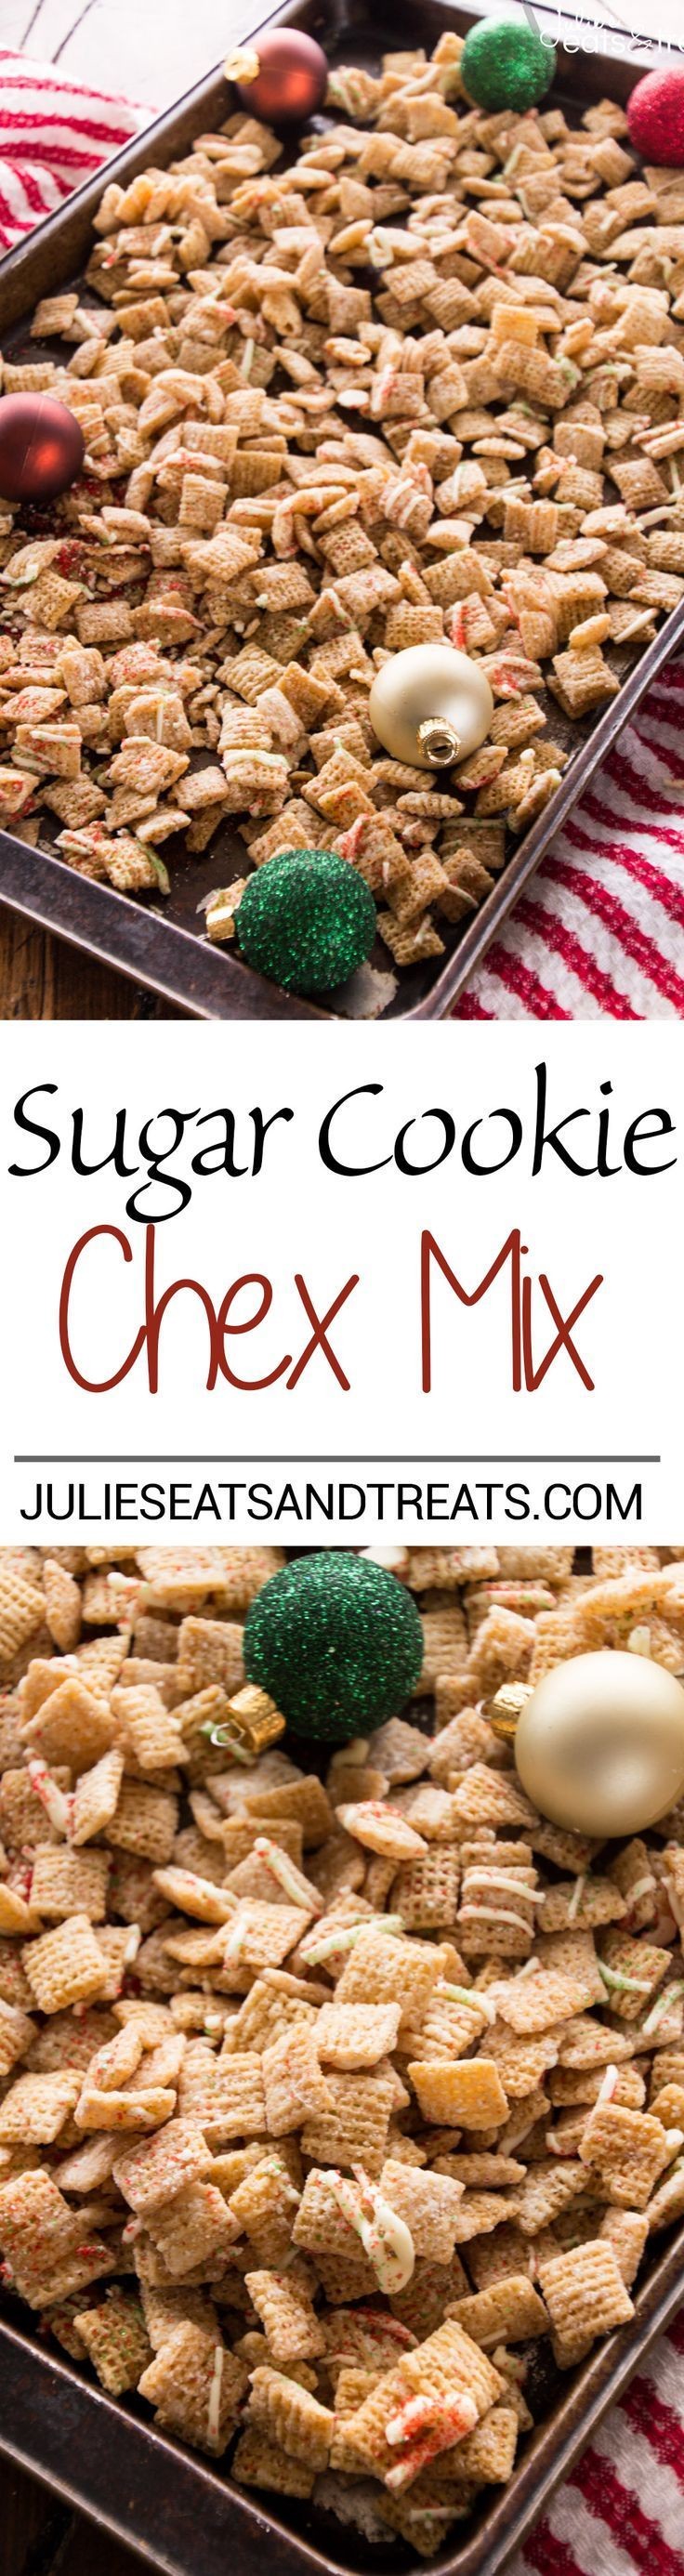 Sugar Cookie Chex Mix Recipe ~ Celebrate the Holidays with this Fast and Easy Snack Mix Recipe that tastes just like Sugar Cookies! @ChexCereal #ChexMagic #ad